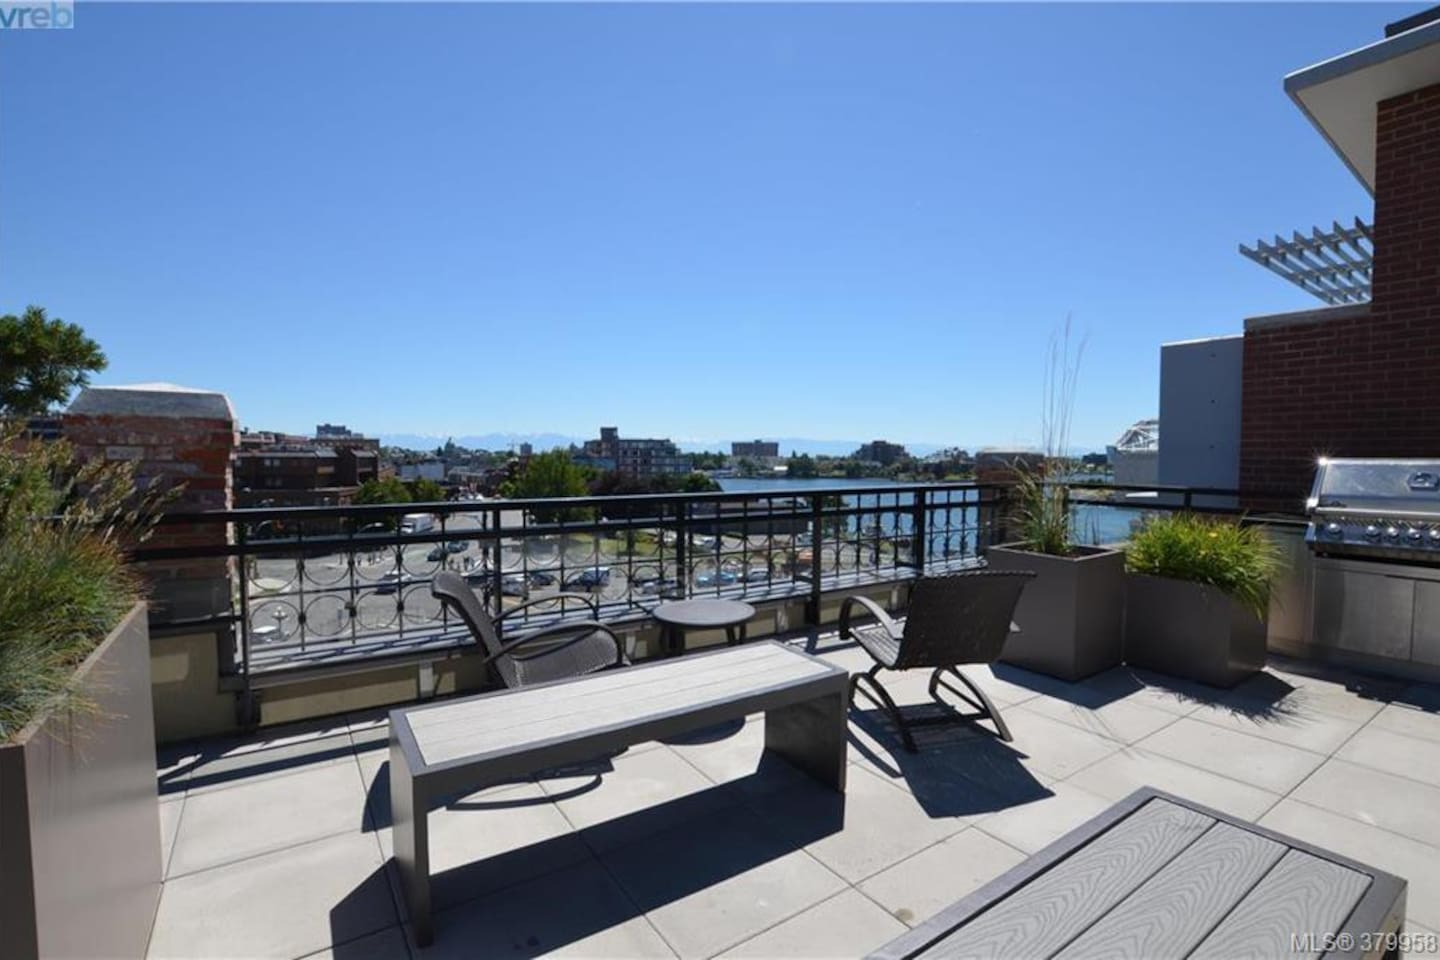 Large common shared rooftop patio